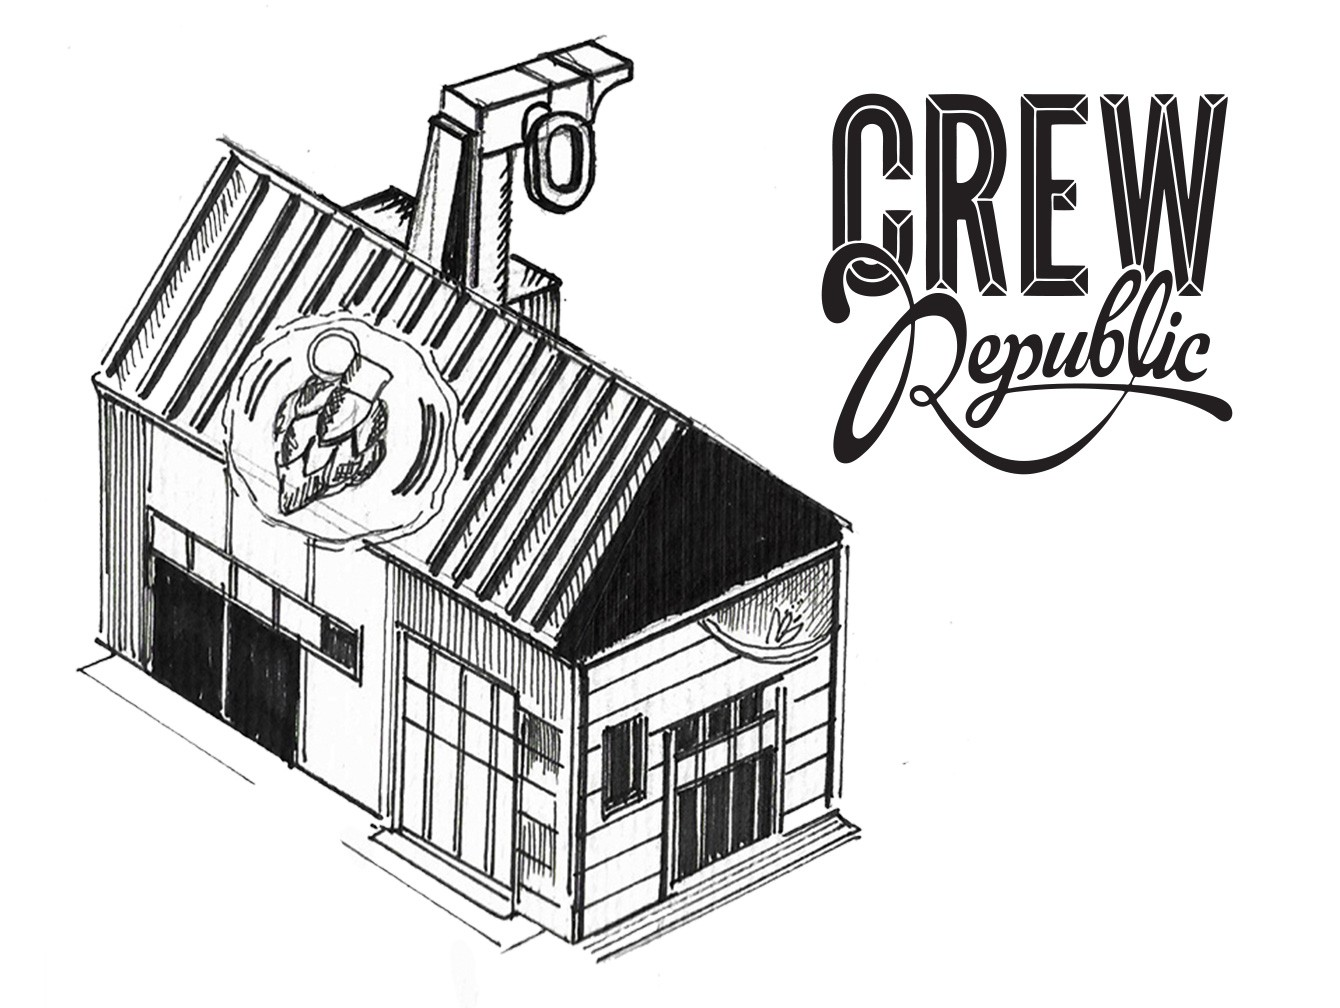 The Brewery Crew Republic